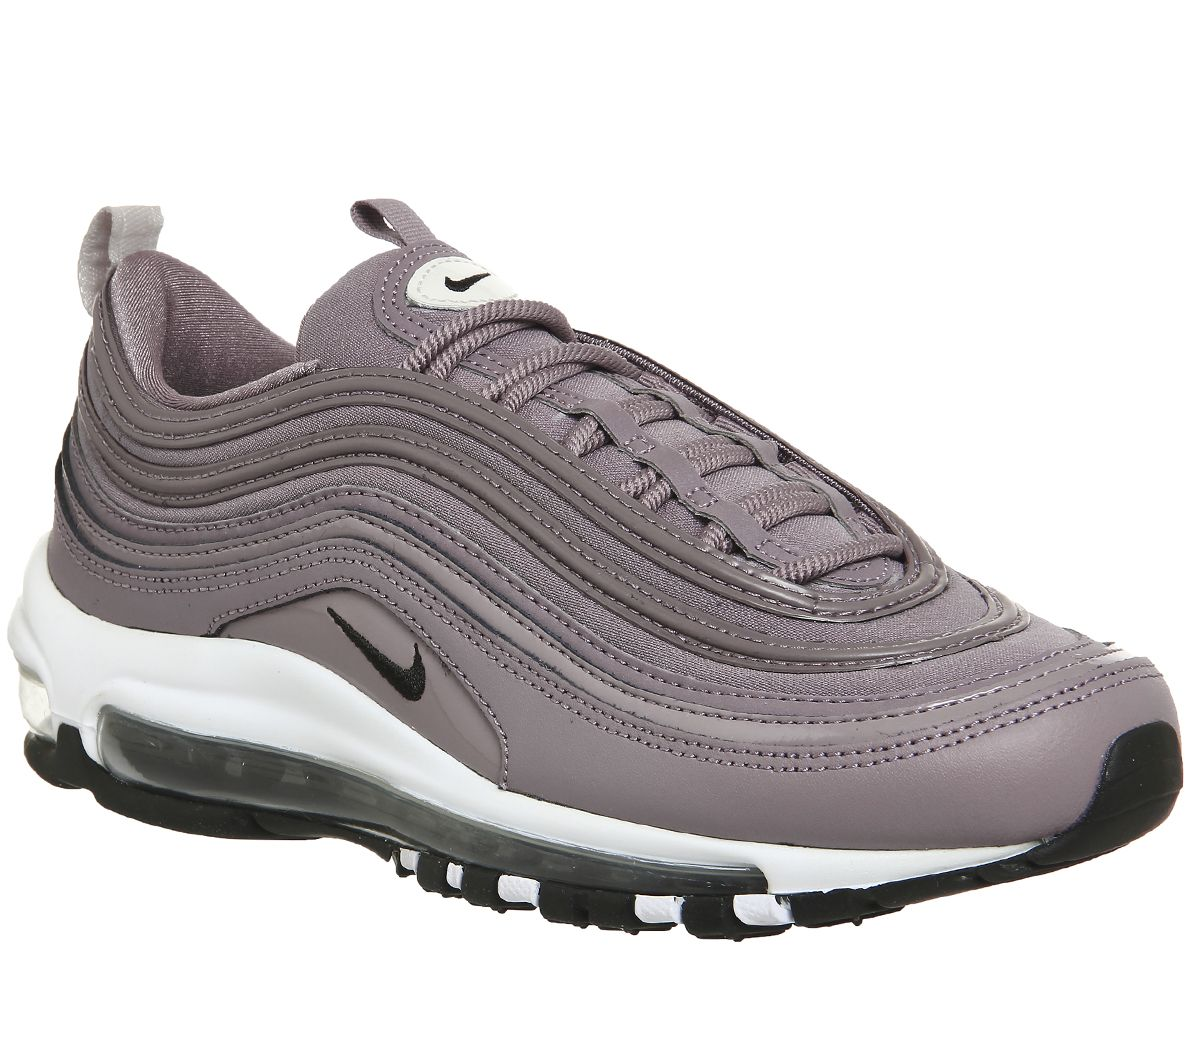 reputable site 55b69 97851 Nike Air Max 97 Taupe Grey Light Bone Prm - Hers trainers